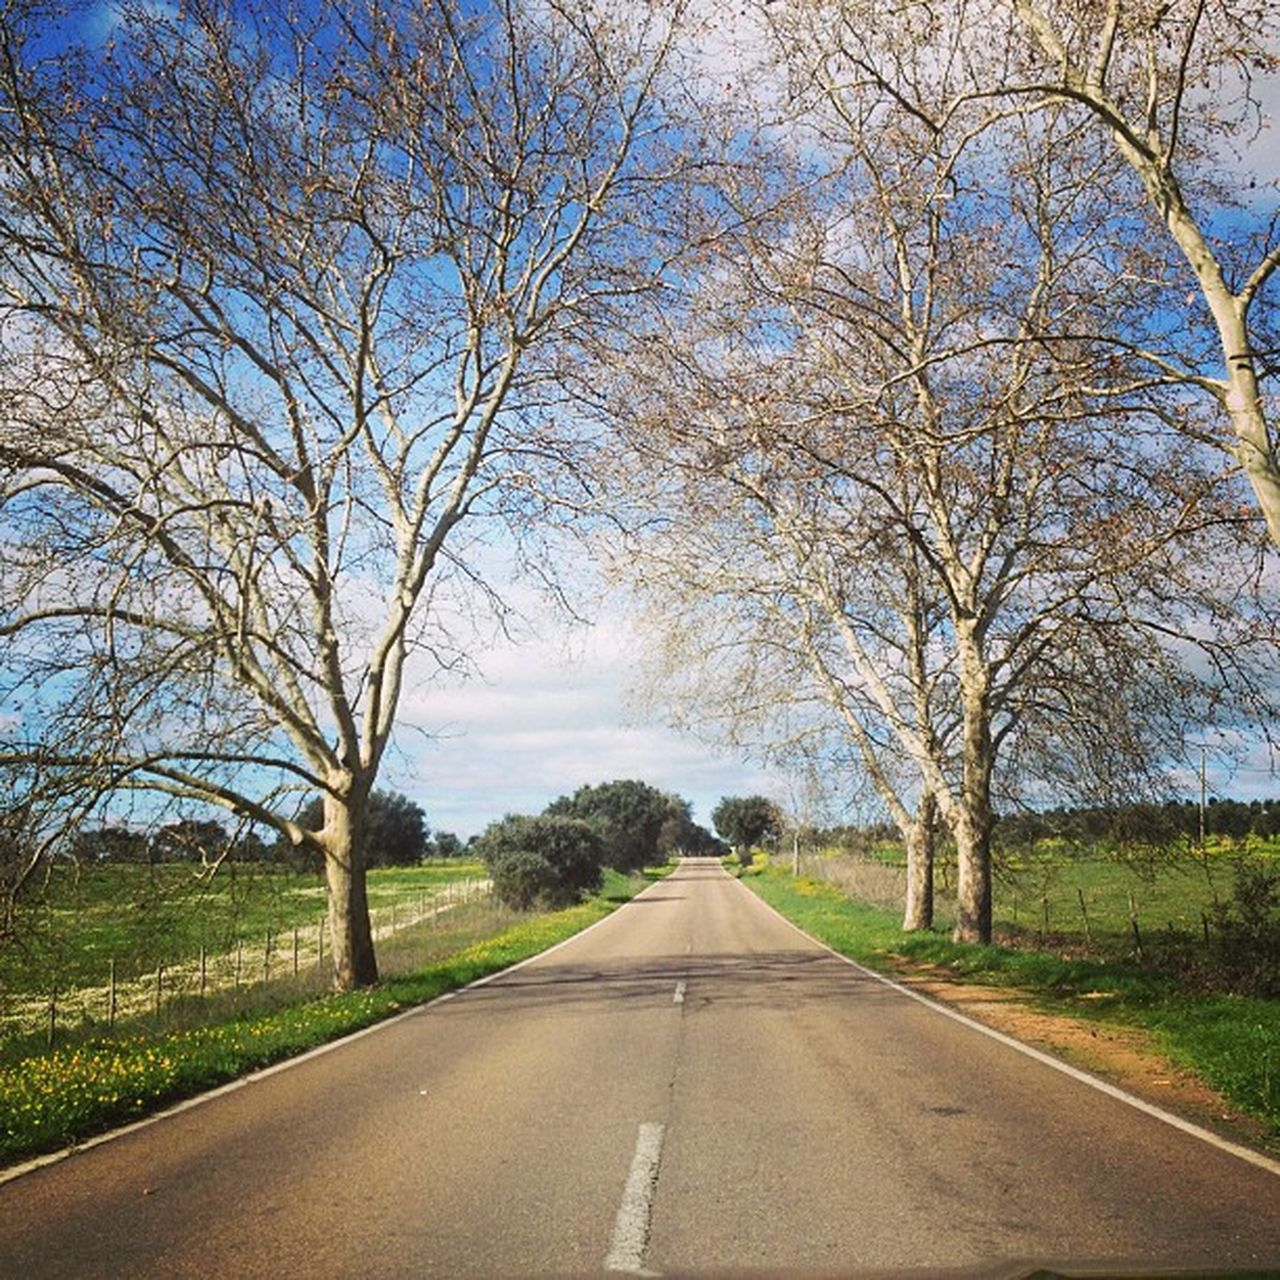 COUNTRY ROAD ALONG TREES ON LANDSCAPE